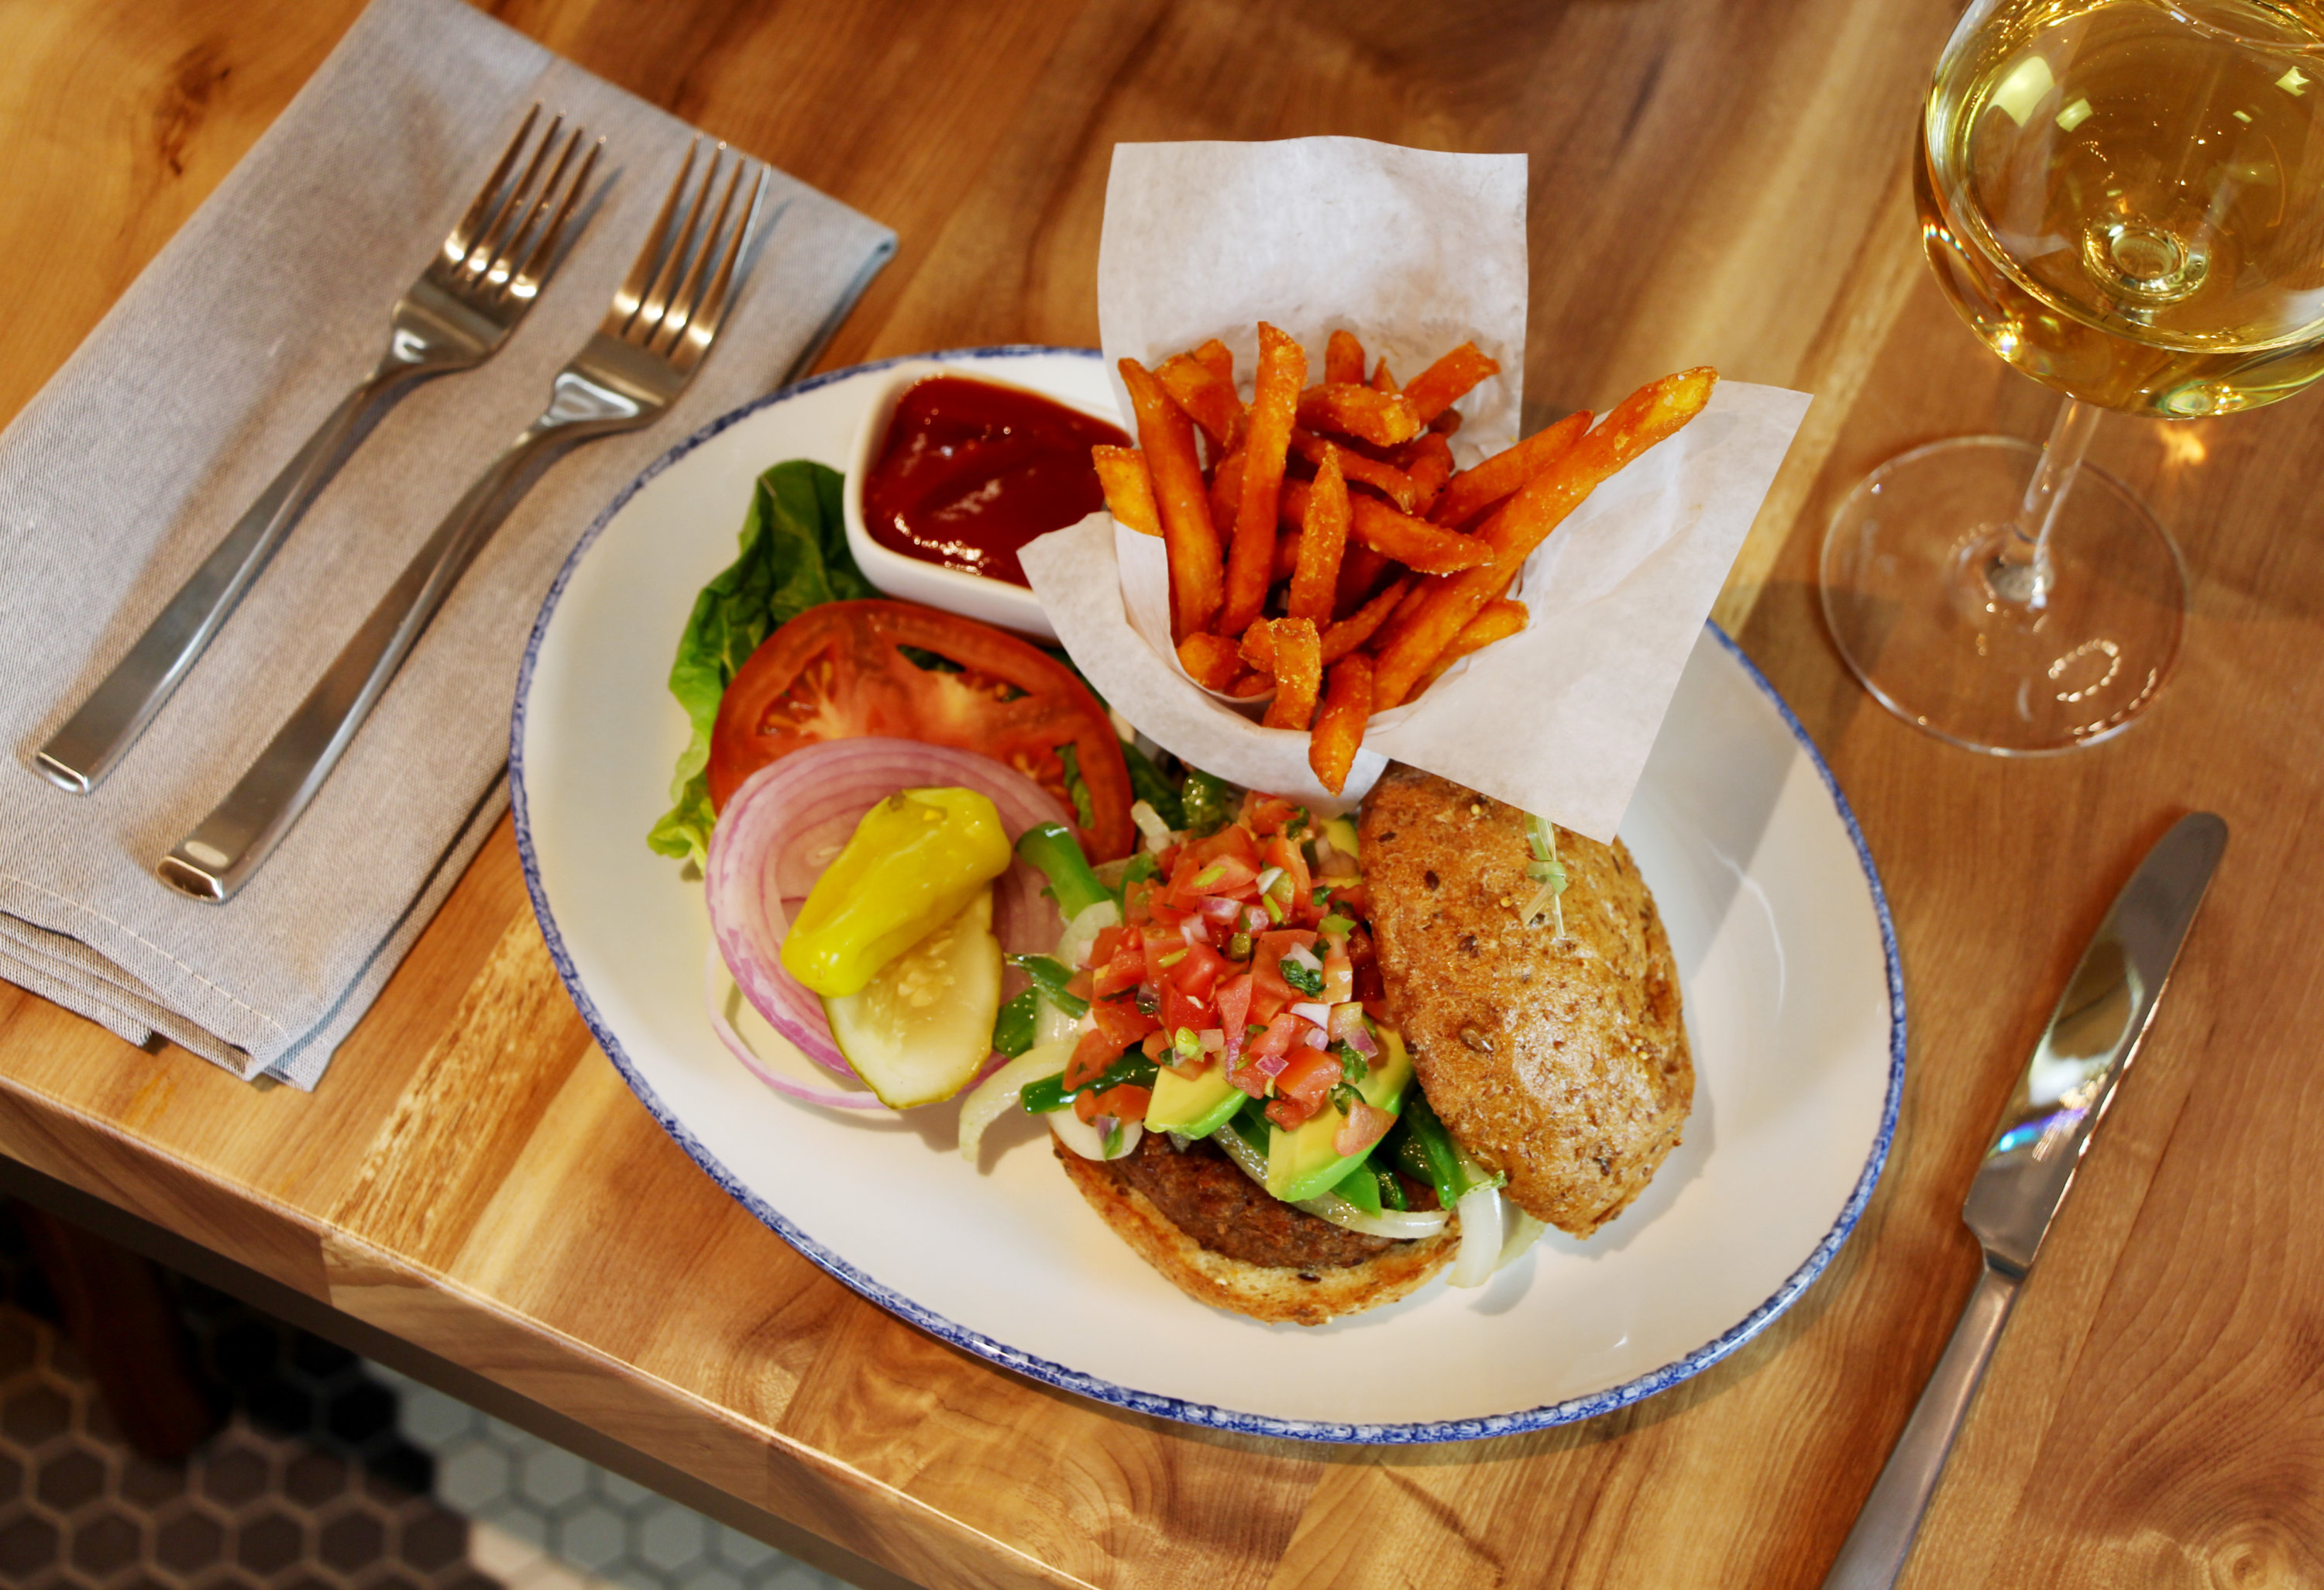 Ballston's New All-Day Cafe Serves Healthy Comfort Food And Vegan Cocktails